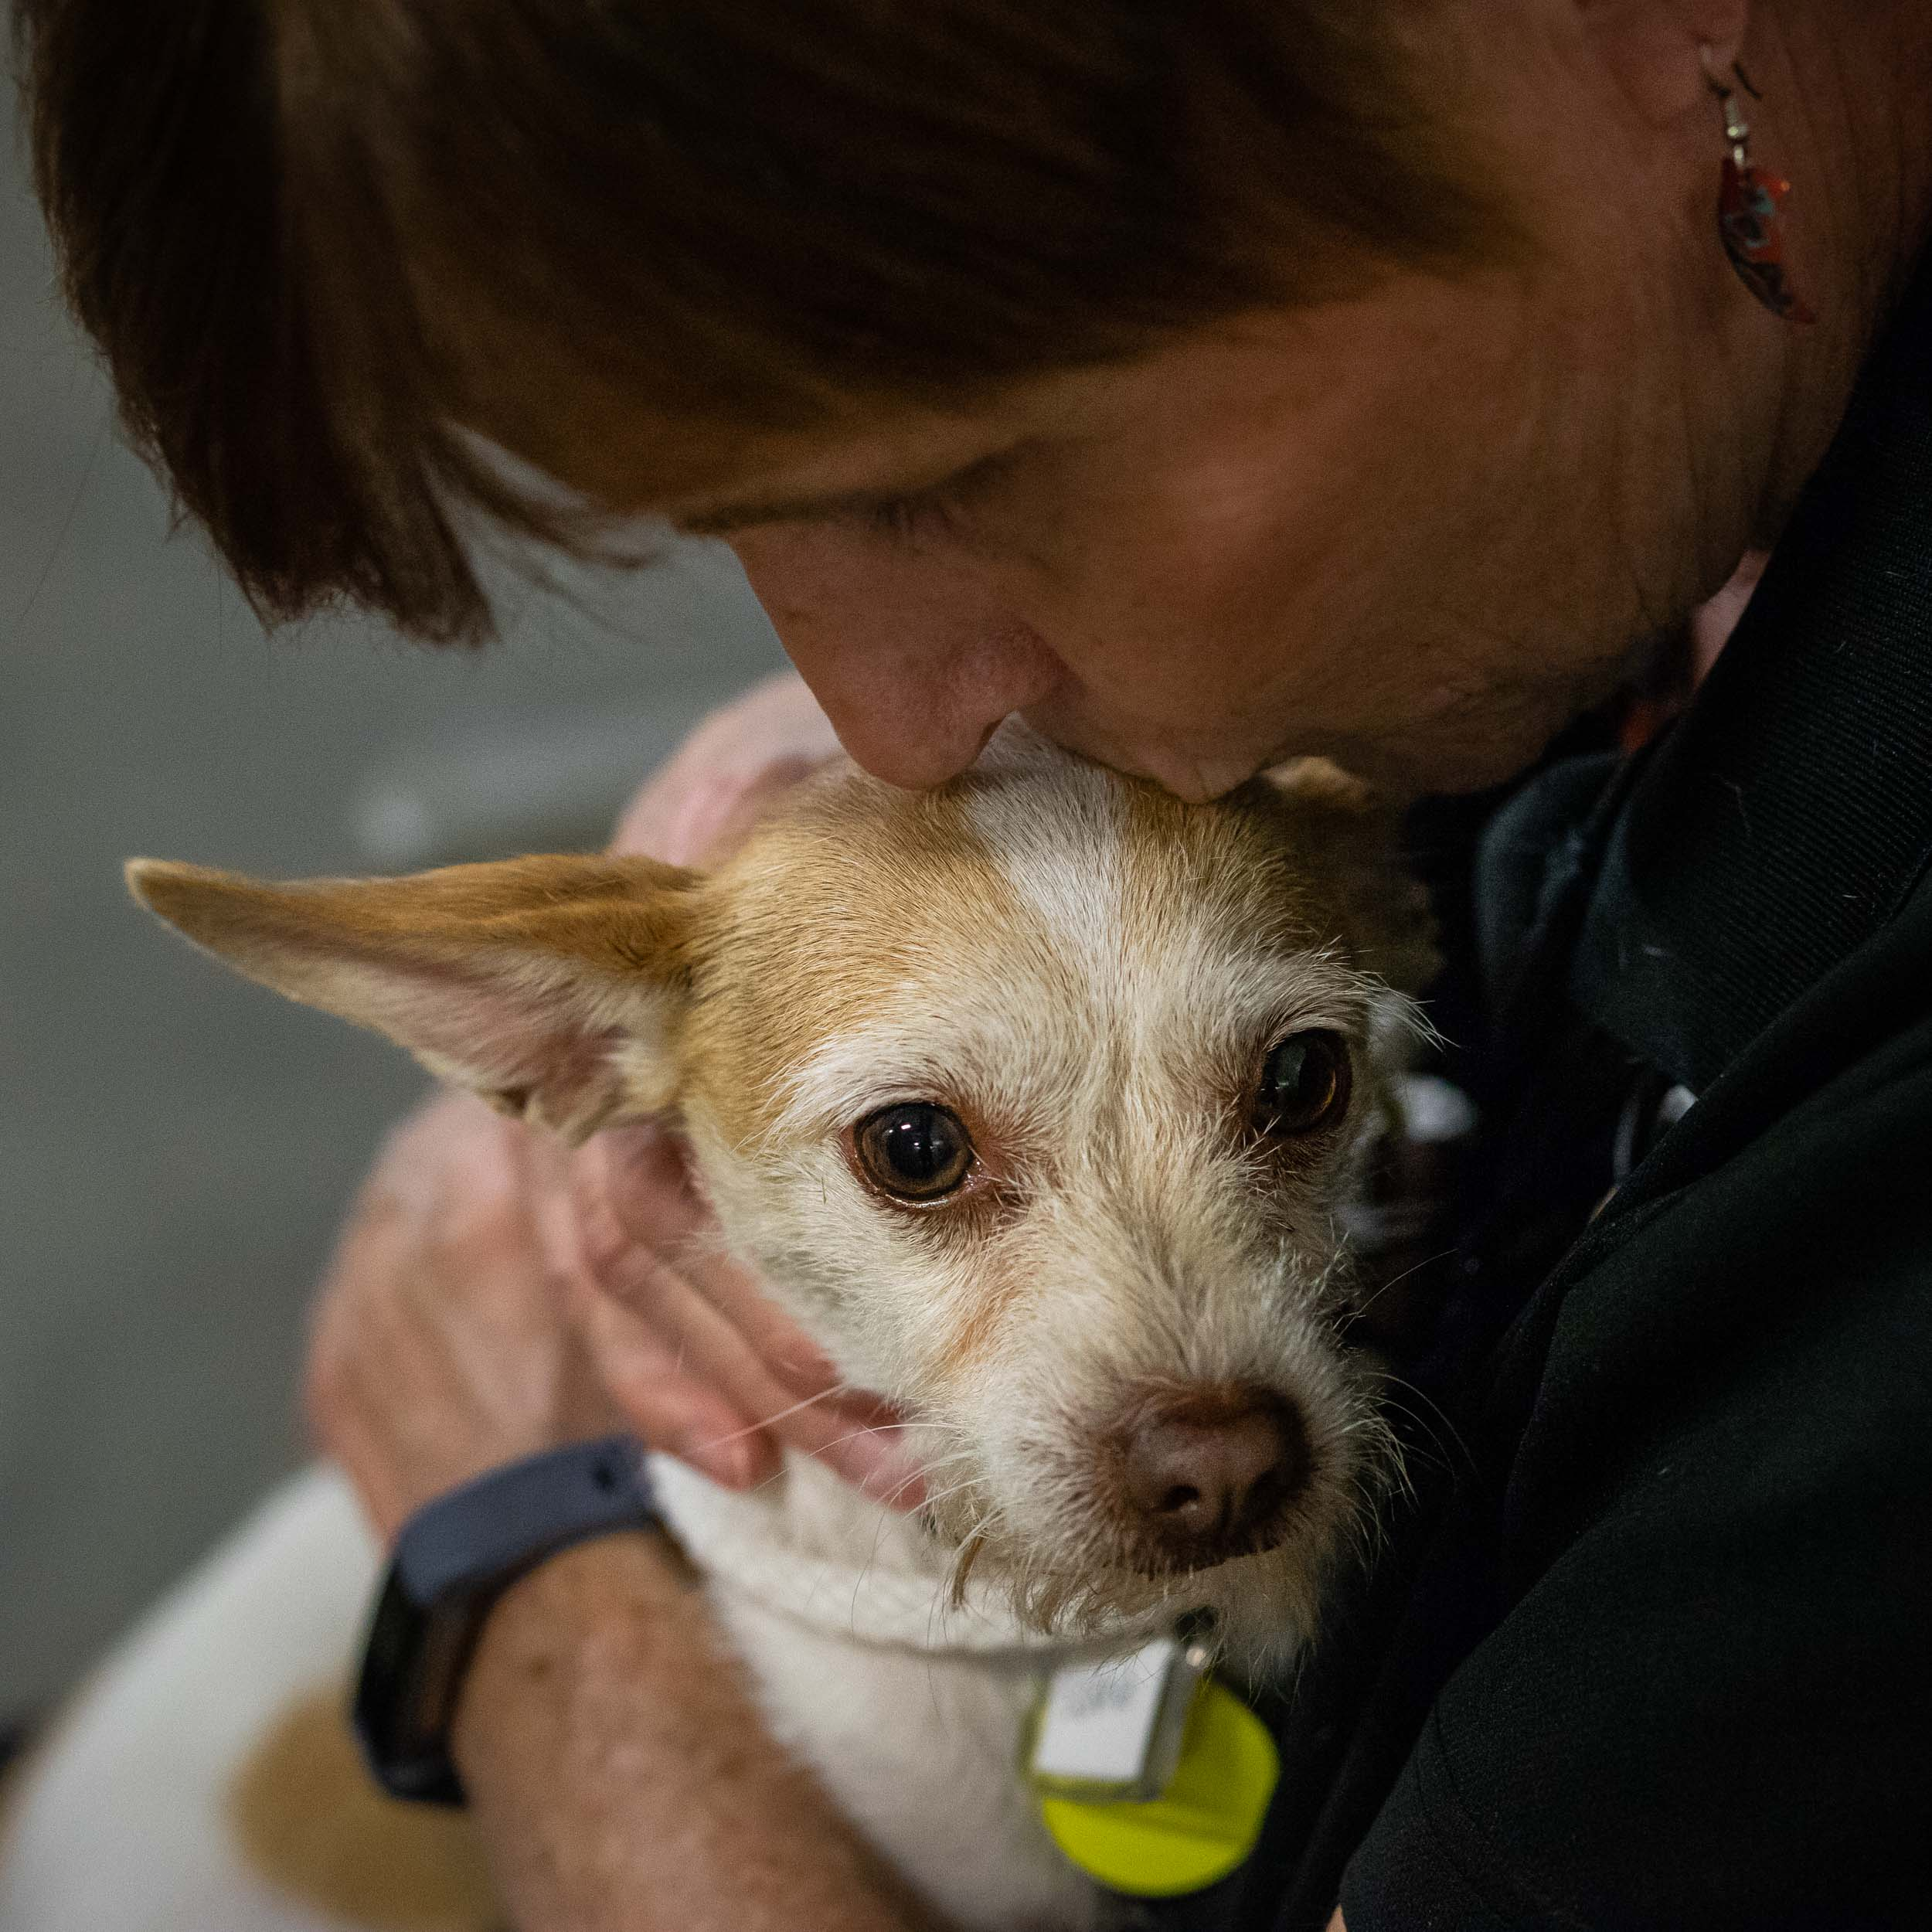 A volunteer comforting one of the scared little dogs.